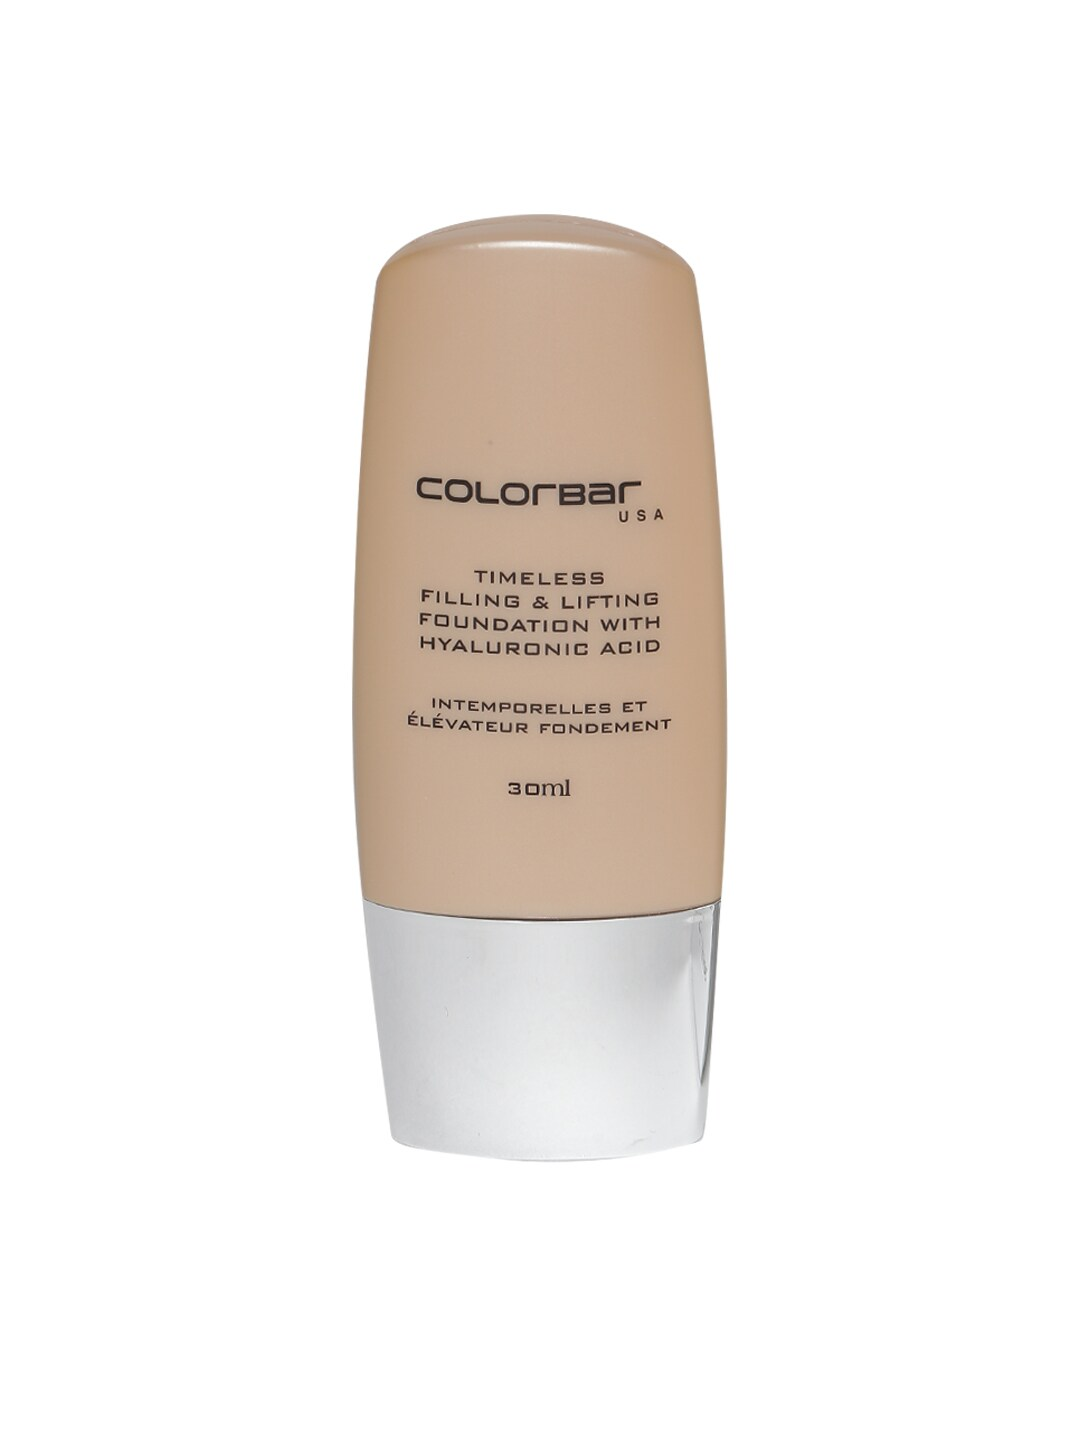 Colorbar Timeless Filling & Lifting Light Linen Foundation 01 image